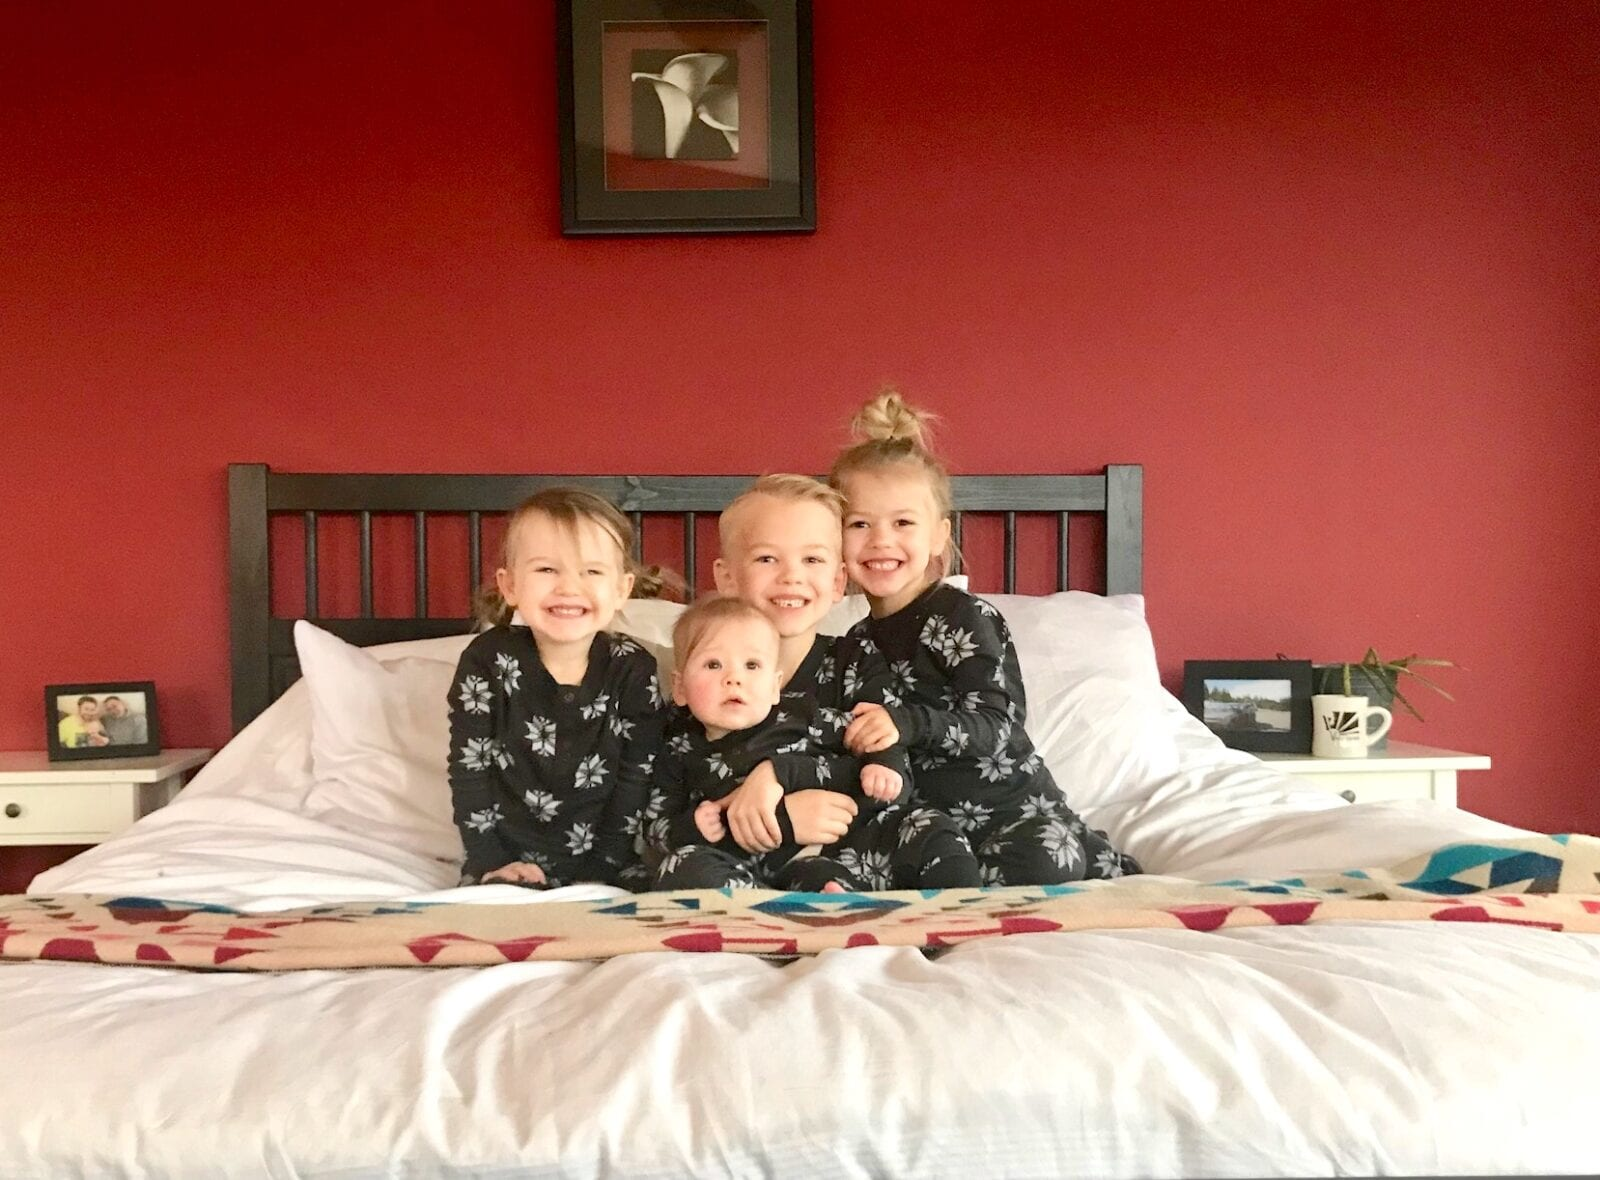 what is it like with 4 kids?